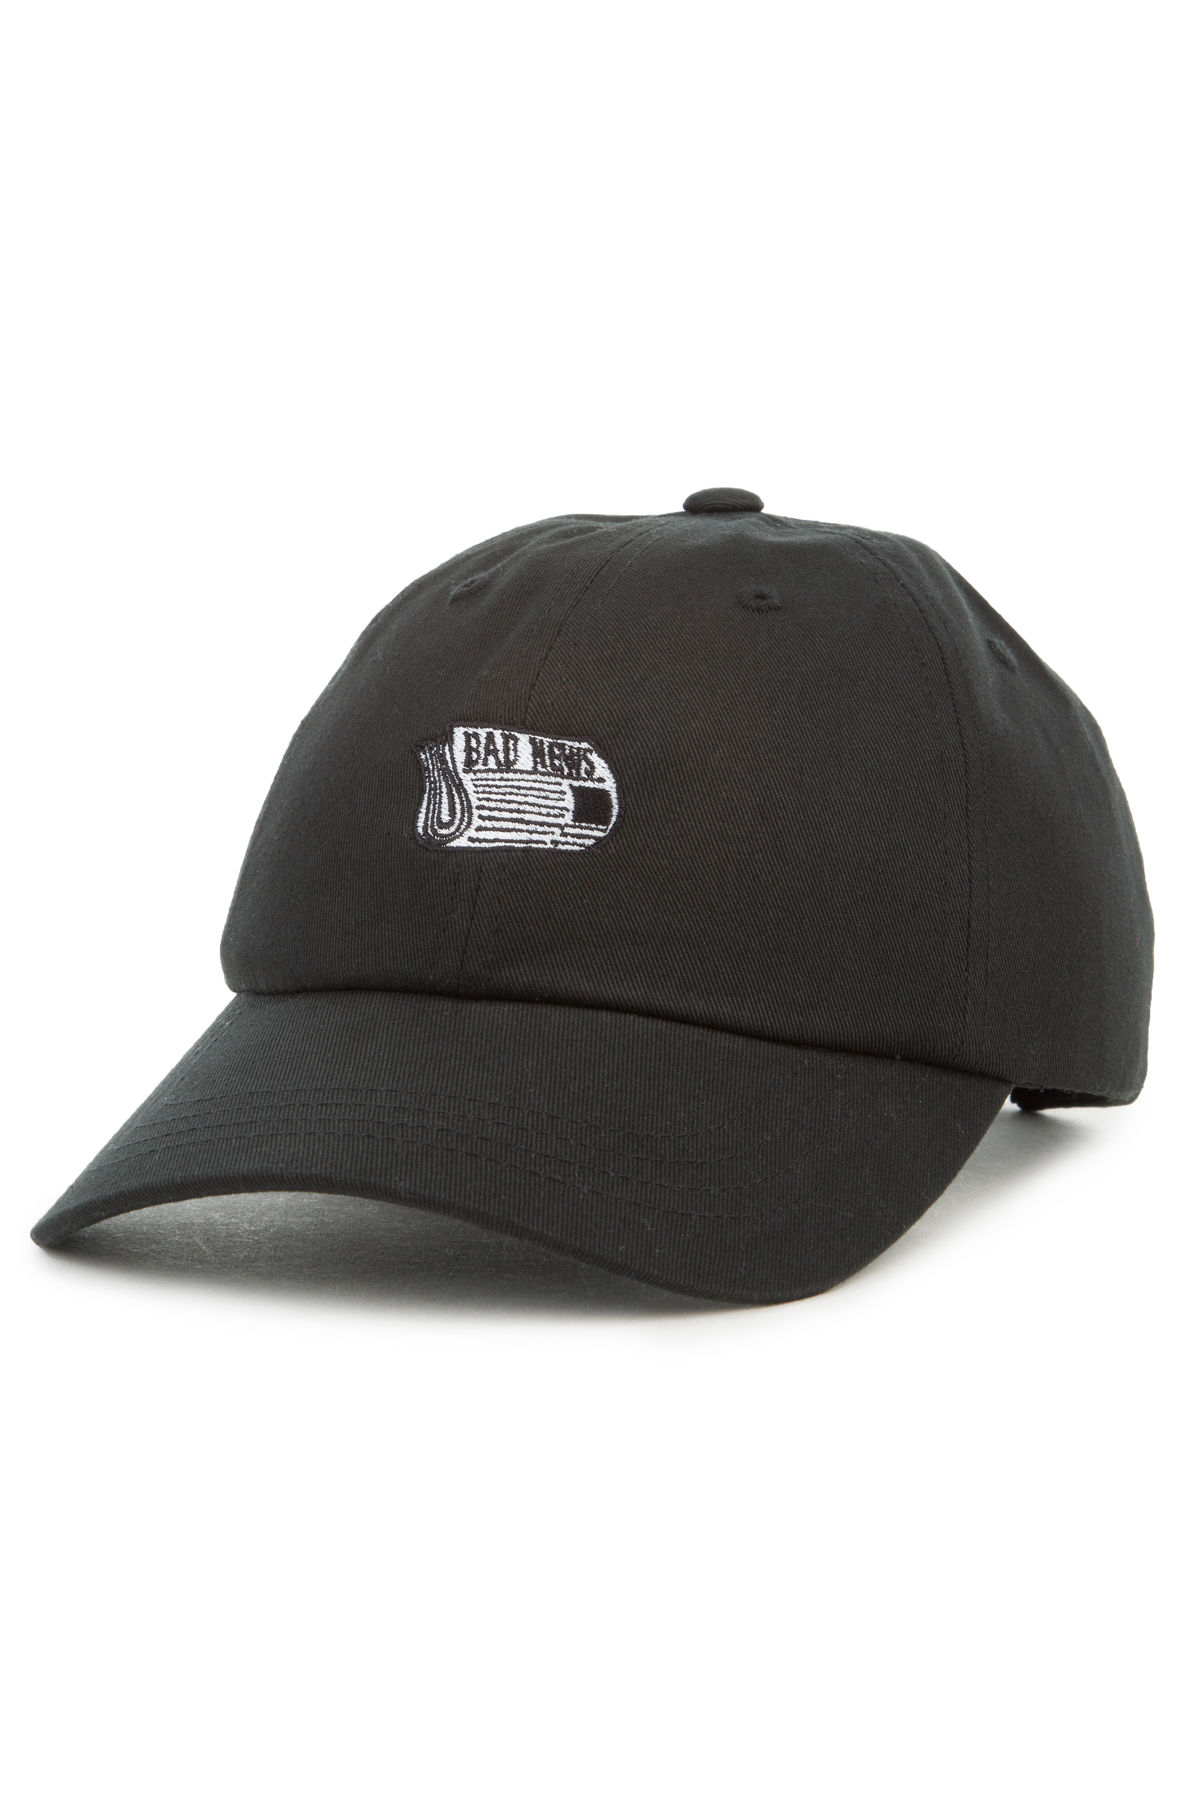 Image of The Bad News Dad Hat in Black